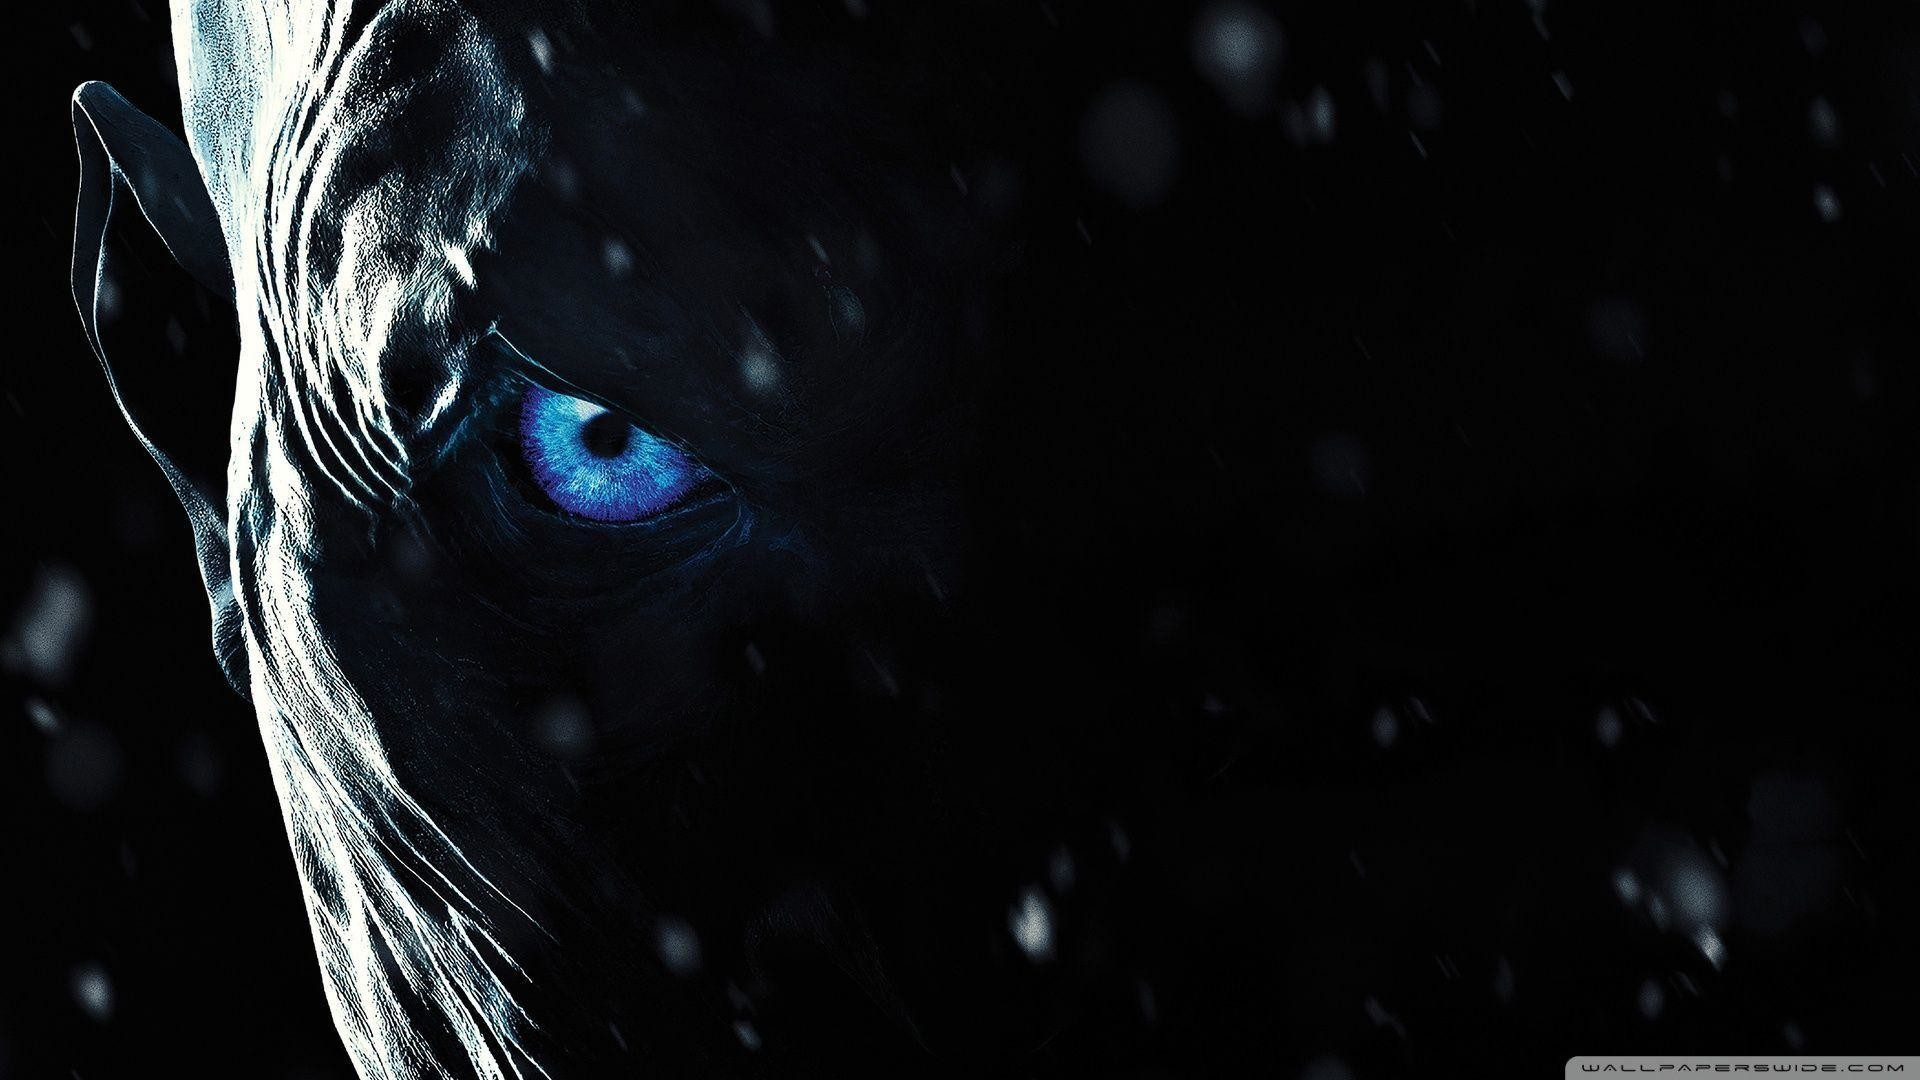 Best Game Of Thrones Wallpapers 72 Images